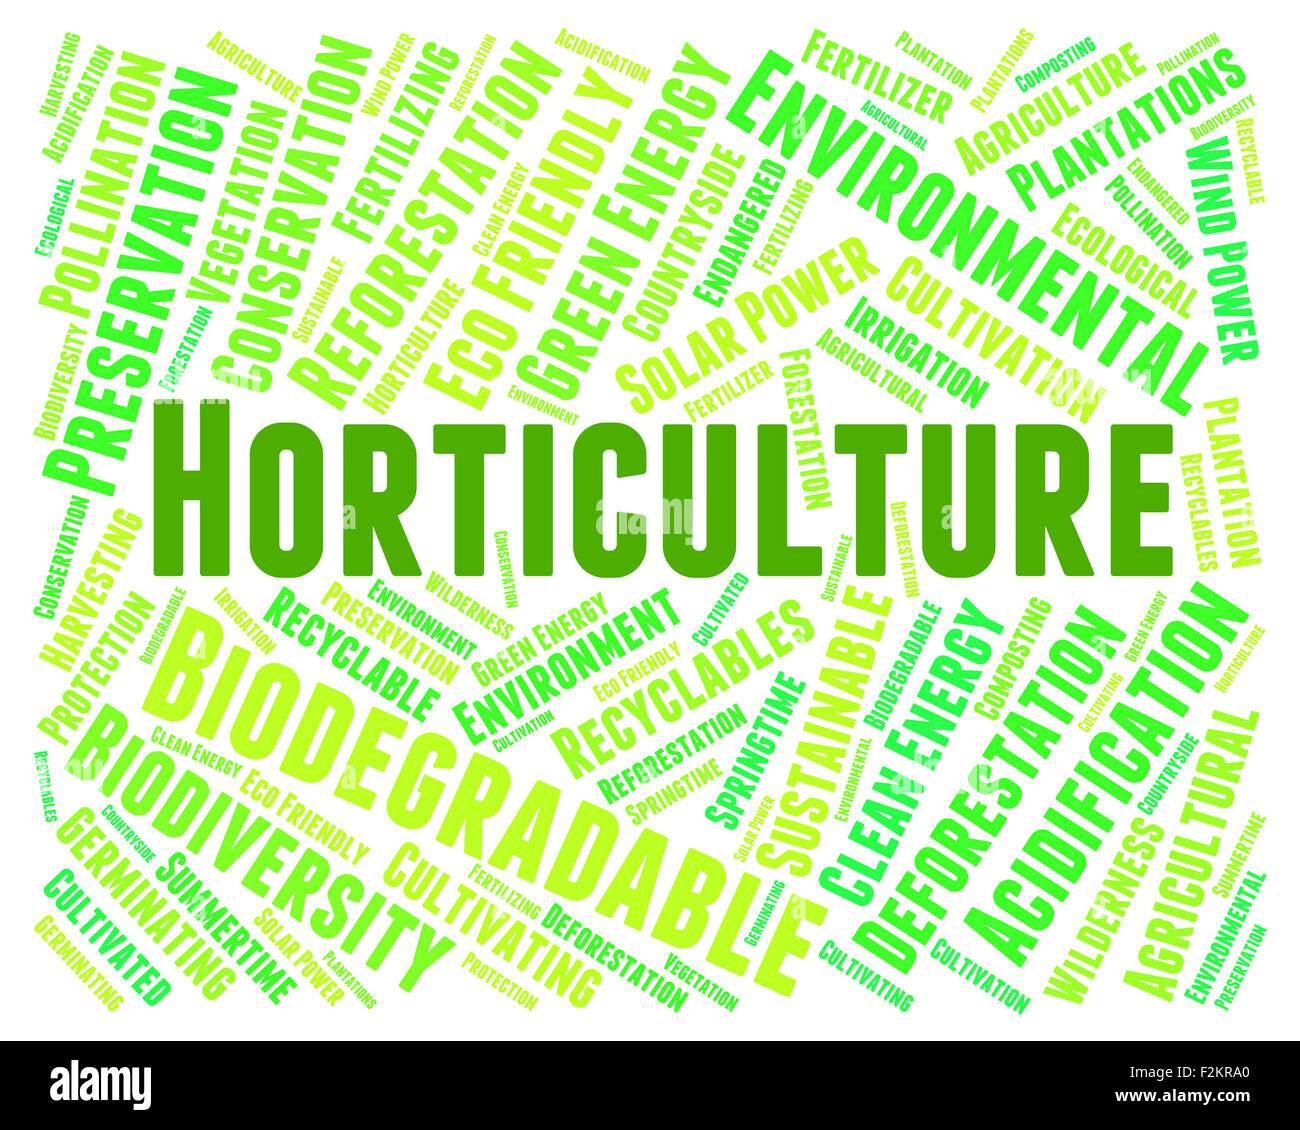 Horticulture Word Meaning Flower Garden And Gardening Stock Photo